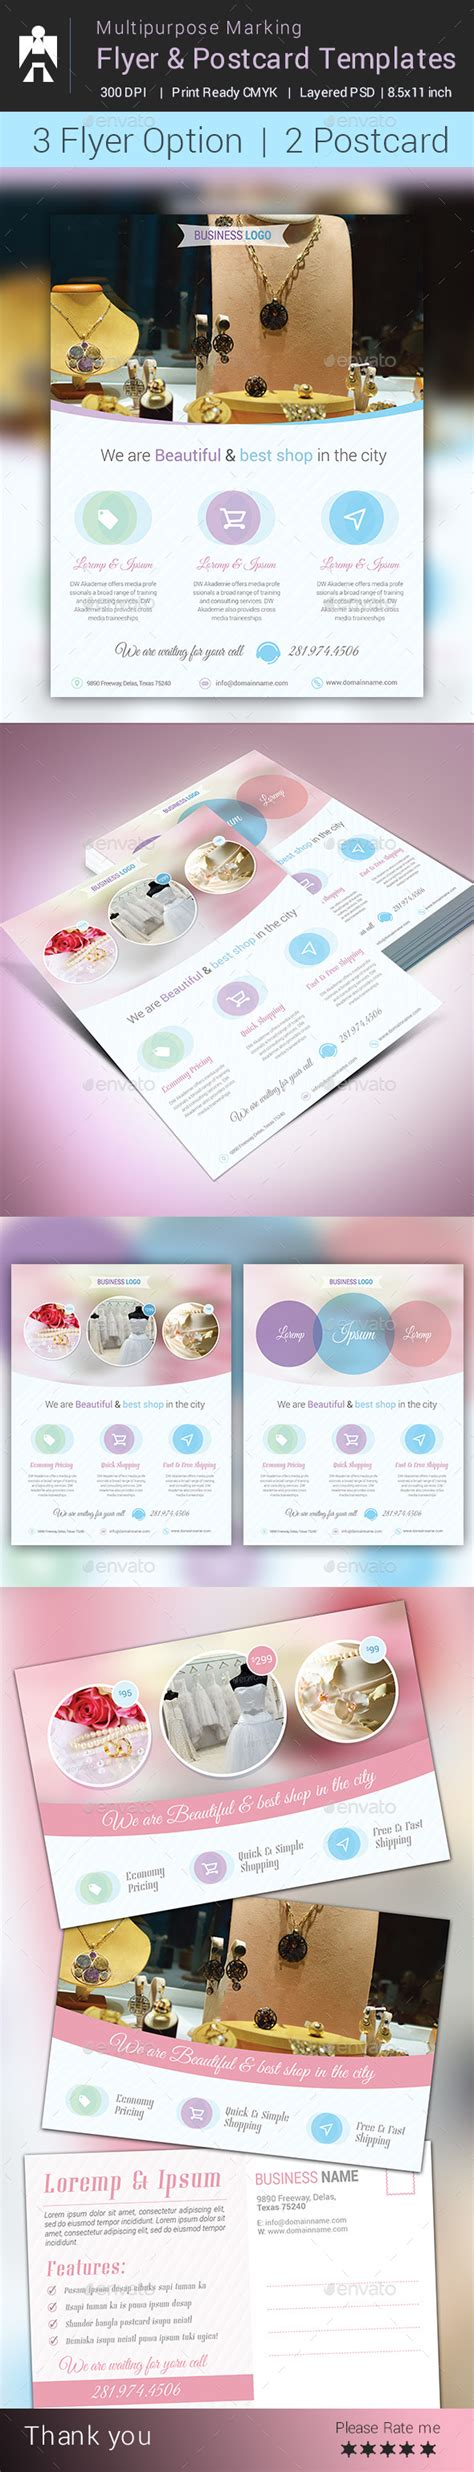 postcard template graphicriver spa marketing postcard flyer vol 2 187 dondrup